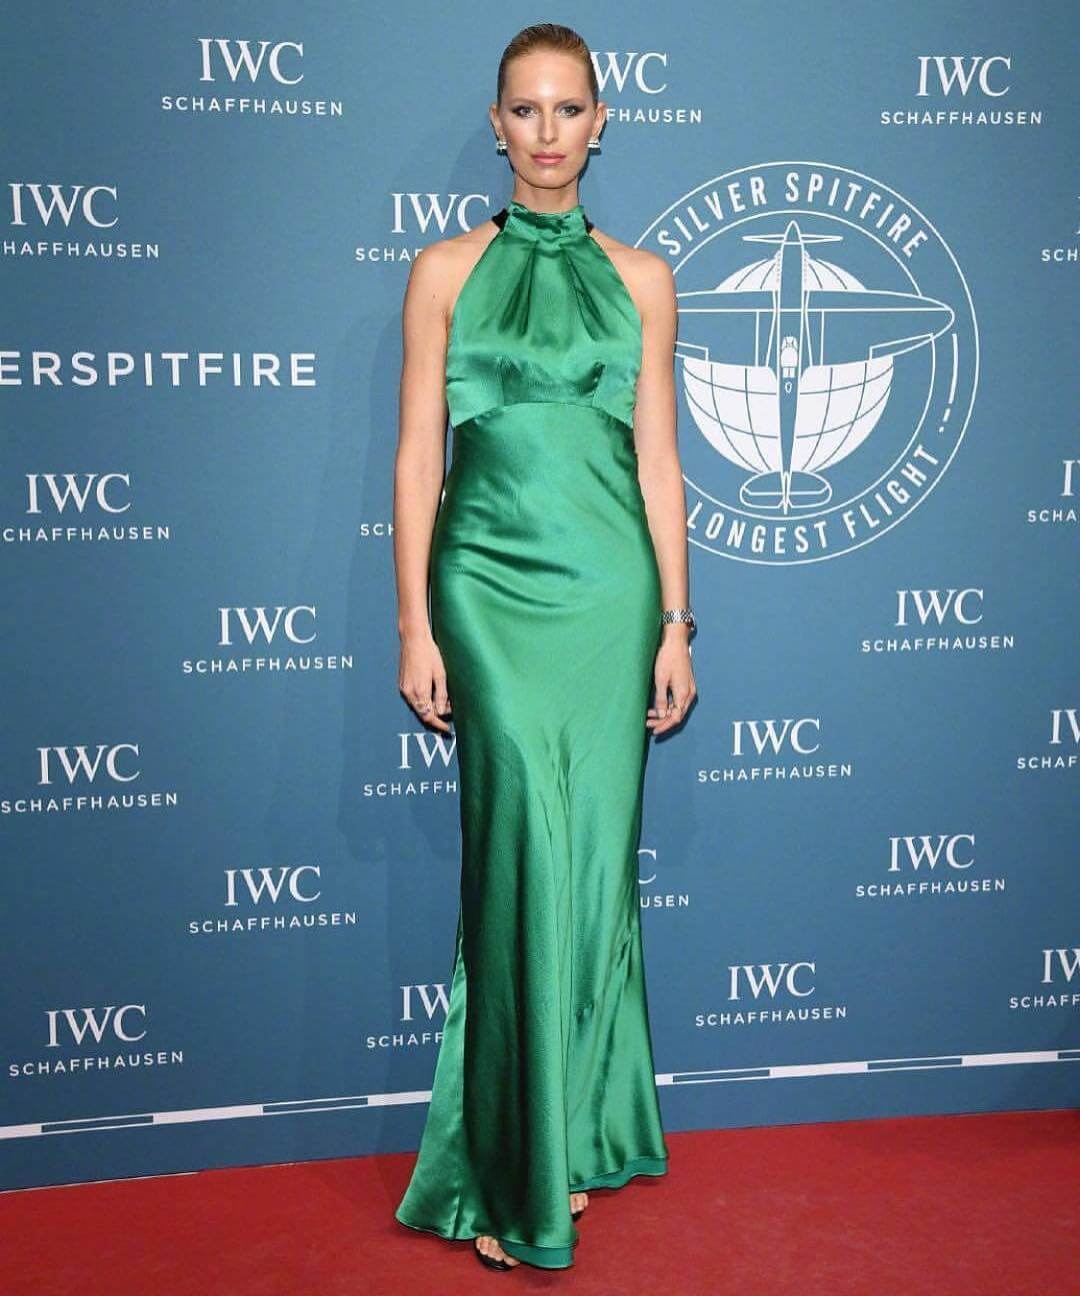 Karolina Kurkova wearing Green Dress in IWC Schaffhausen in Geneva, Switzerland Januray 17, 2019 1